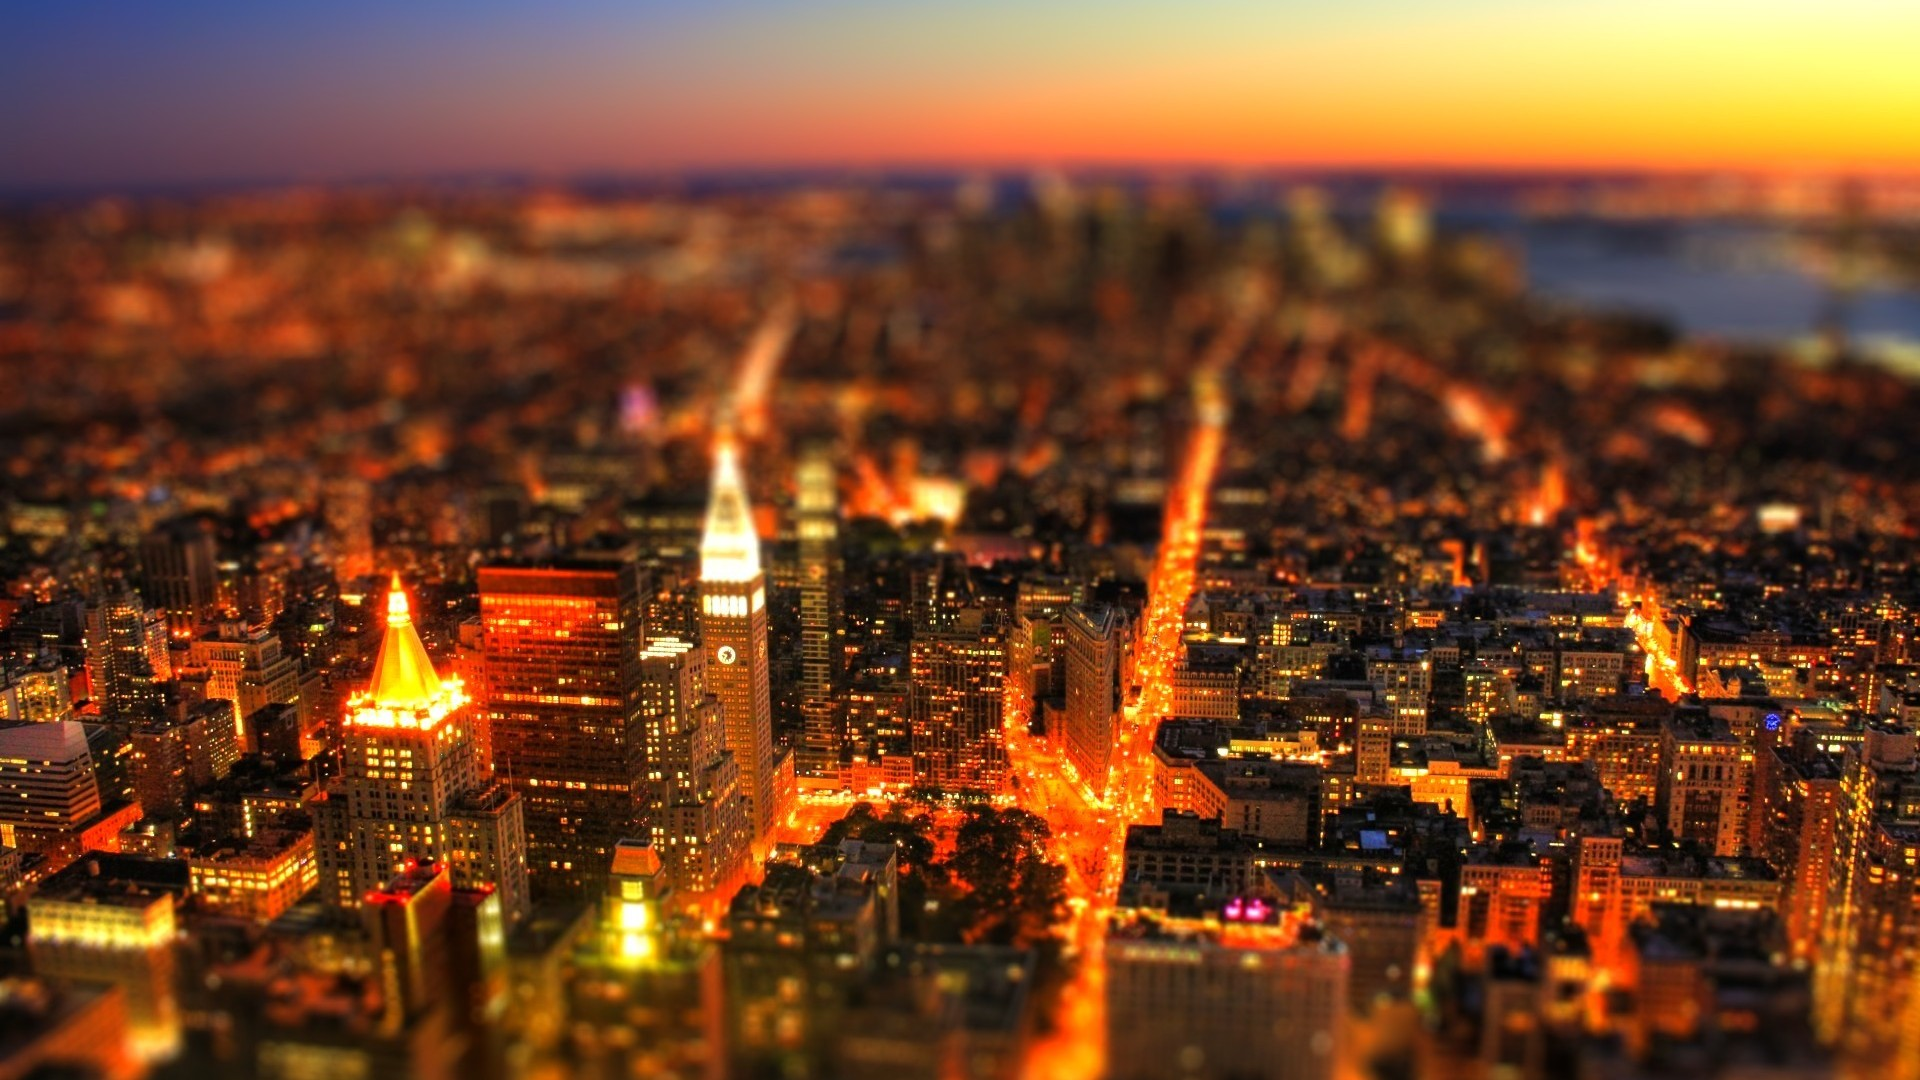 30 tilt shift wallpapers backgrounds images design for In the city wallpaper